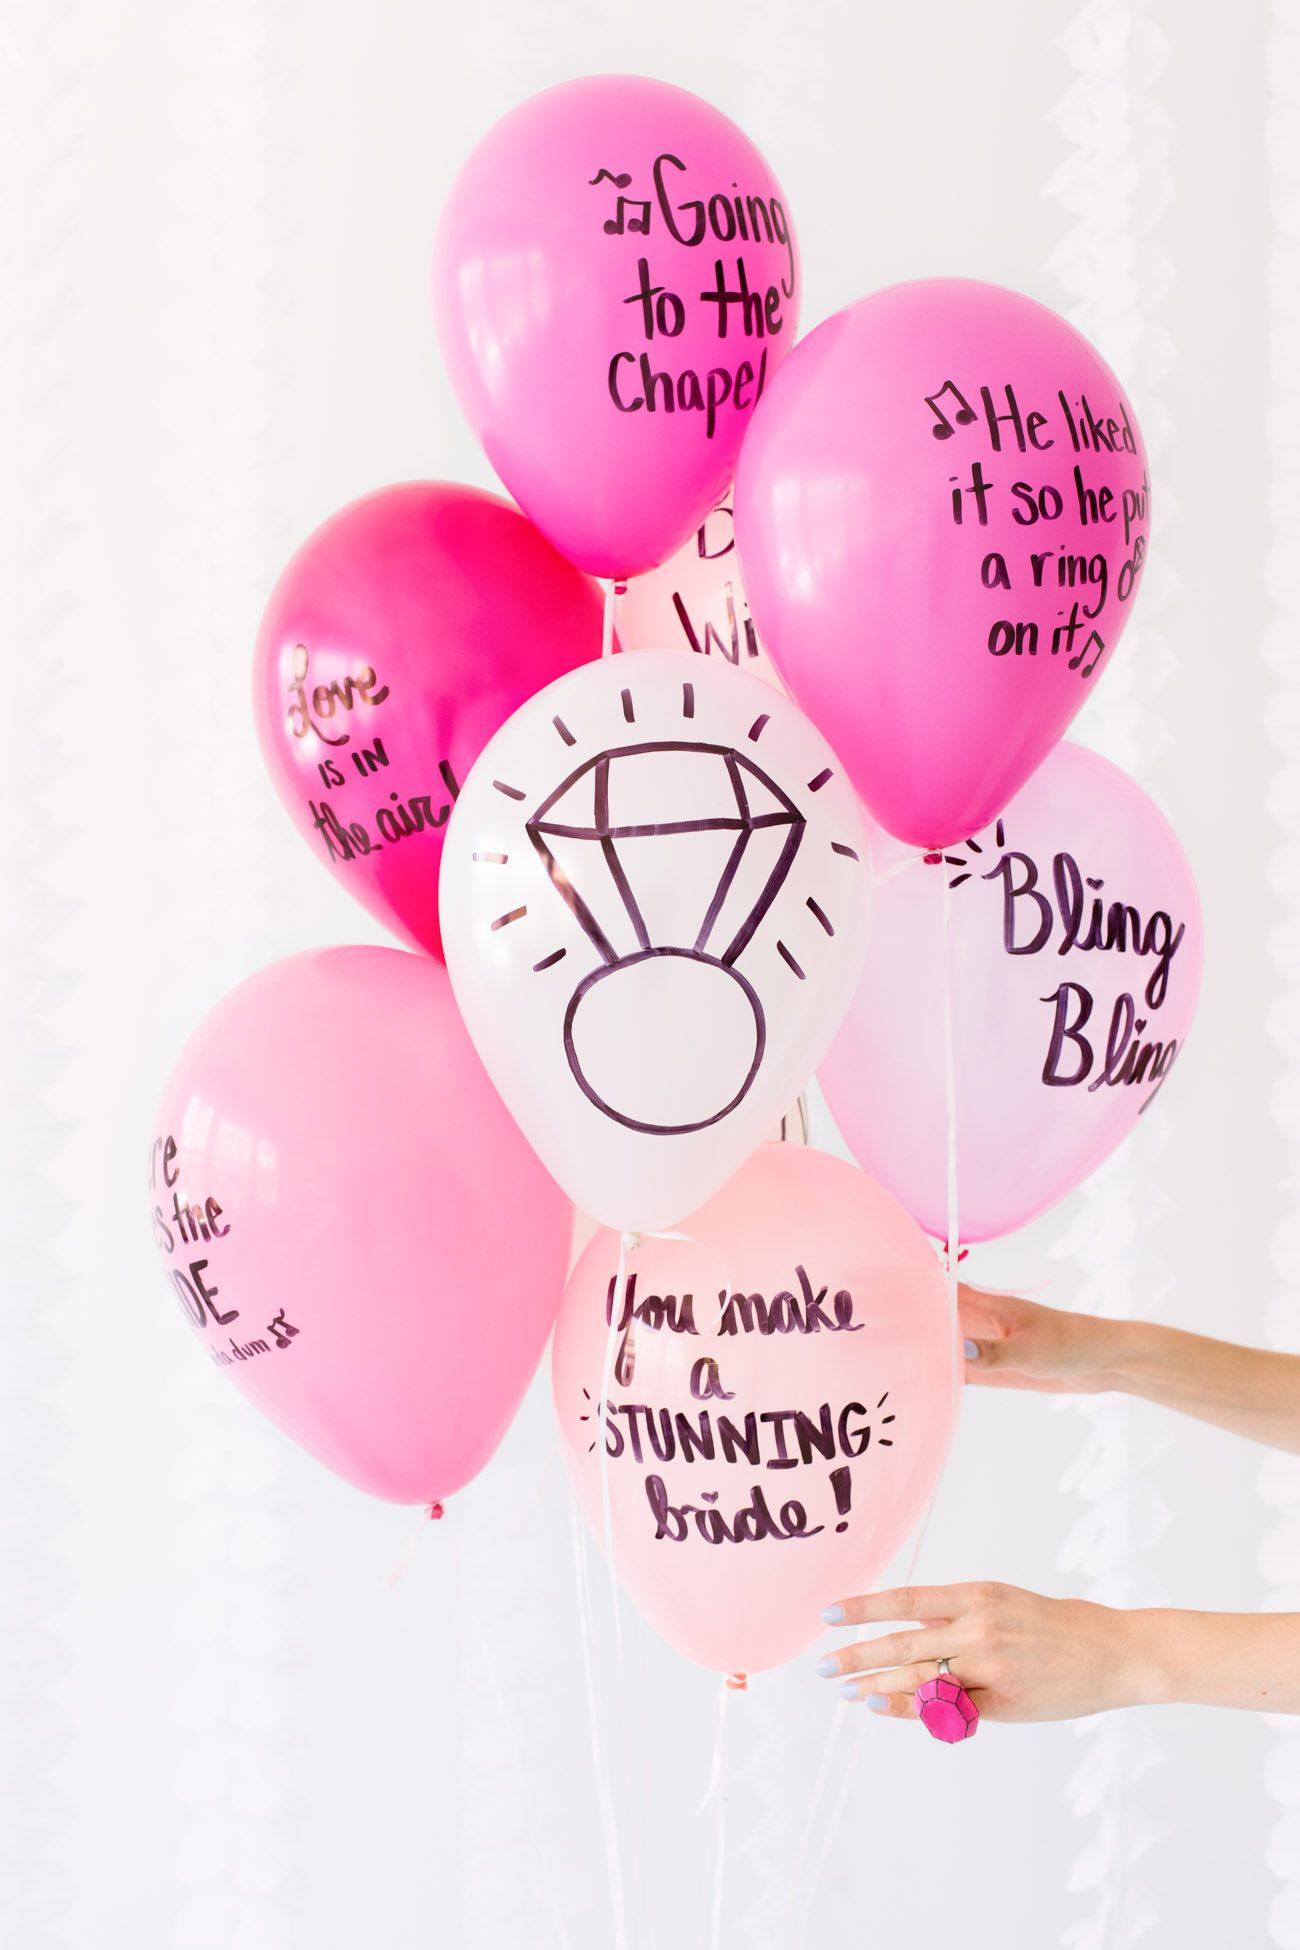 Inspirational Bride To Be So Love This Diy Balloon Wishes Bridal Hen Nights Bridal Shower Quotes Niece P 10 Bridal Shower Ideasbridal Shower Quotesml Diy Balloon Wishes